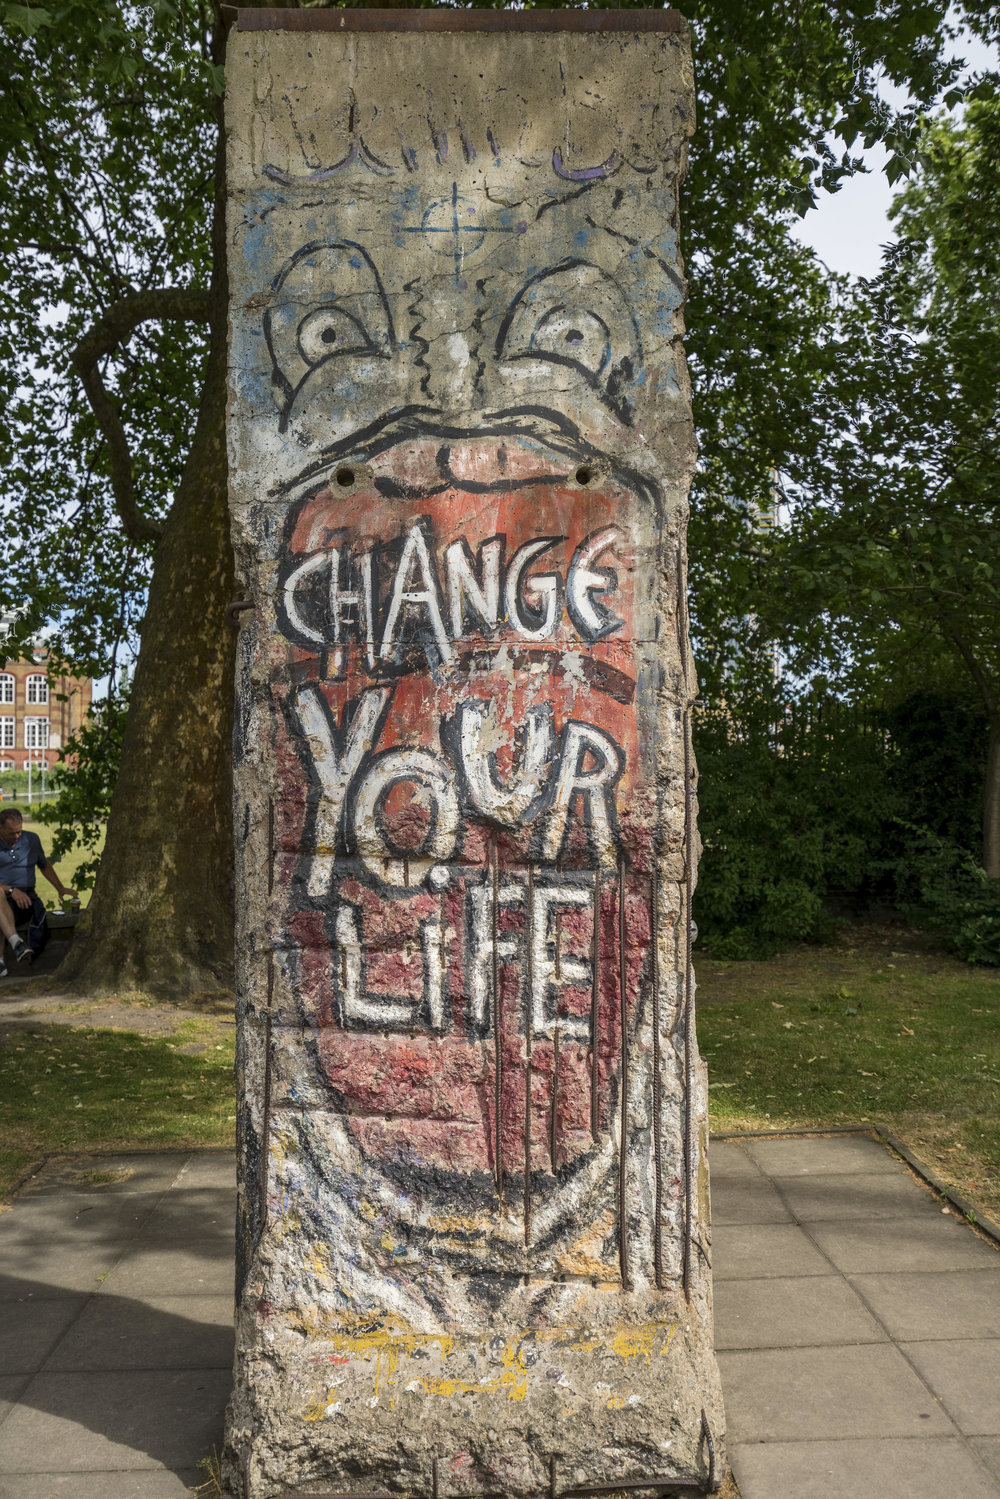 I thought this was just some cool art, its actually a section of the Berlin Wall!  16-35 f4 at 35mm, f4, 1/200, iso 100